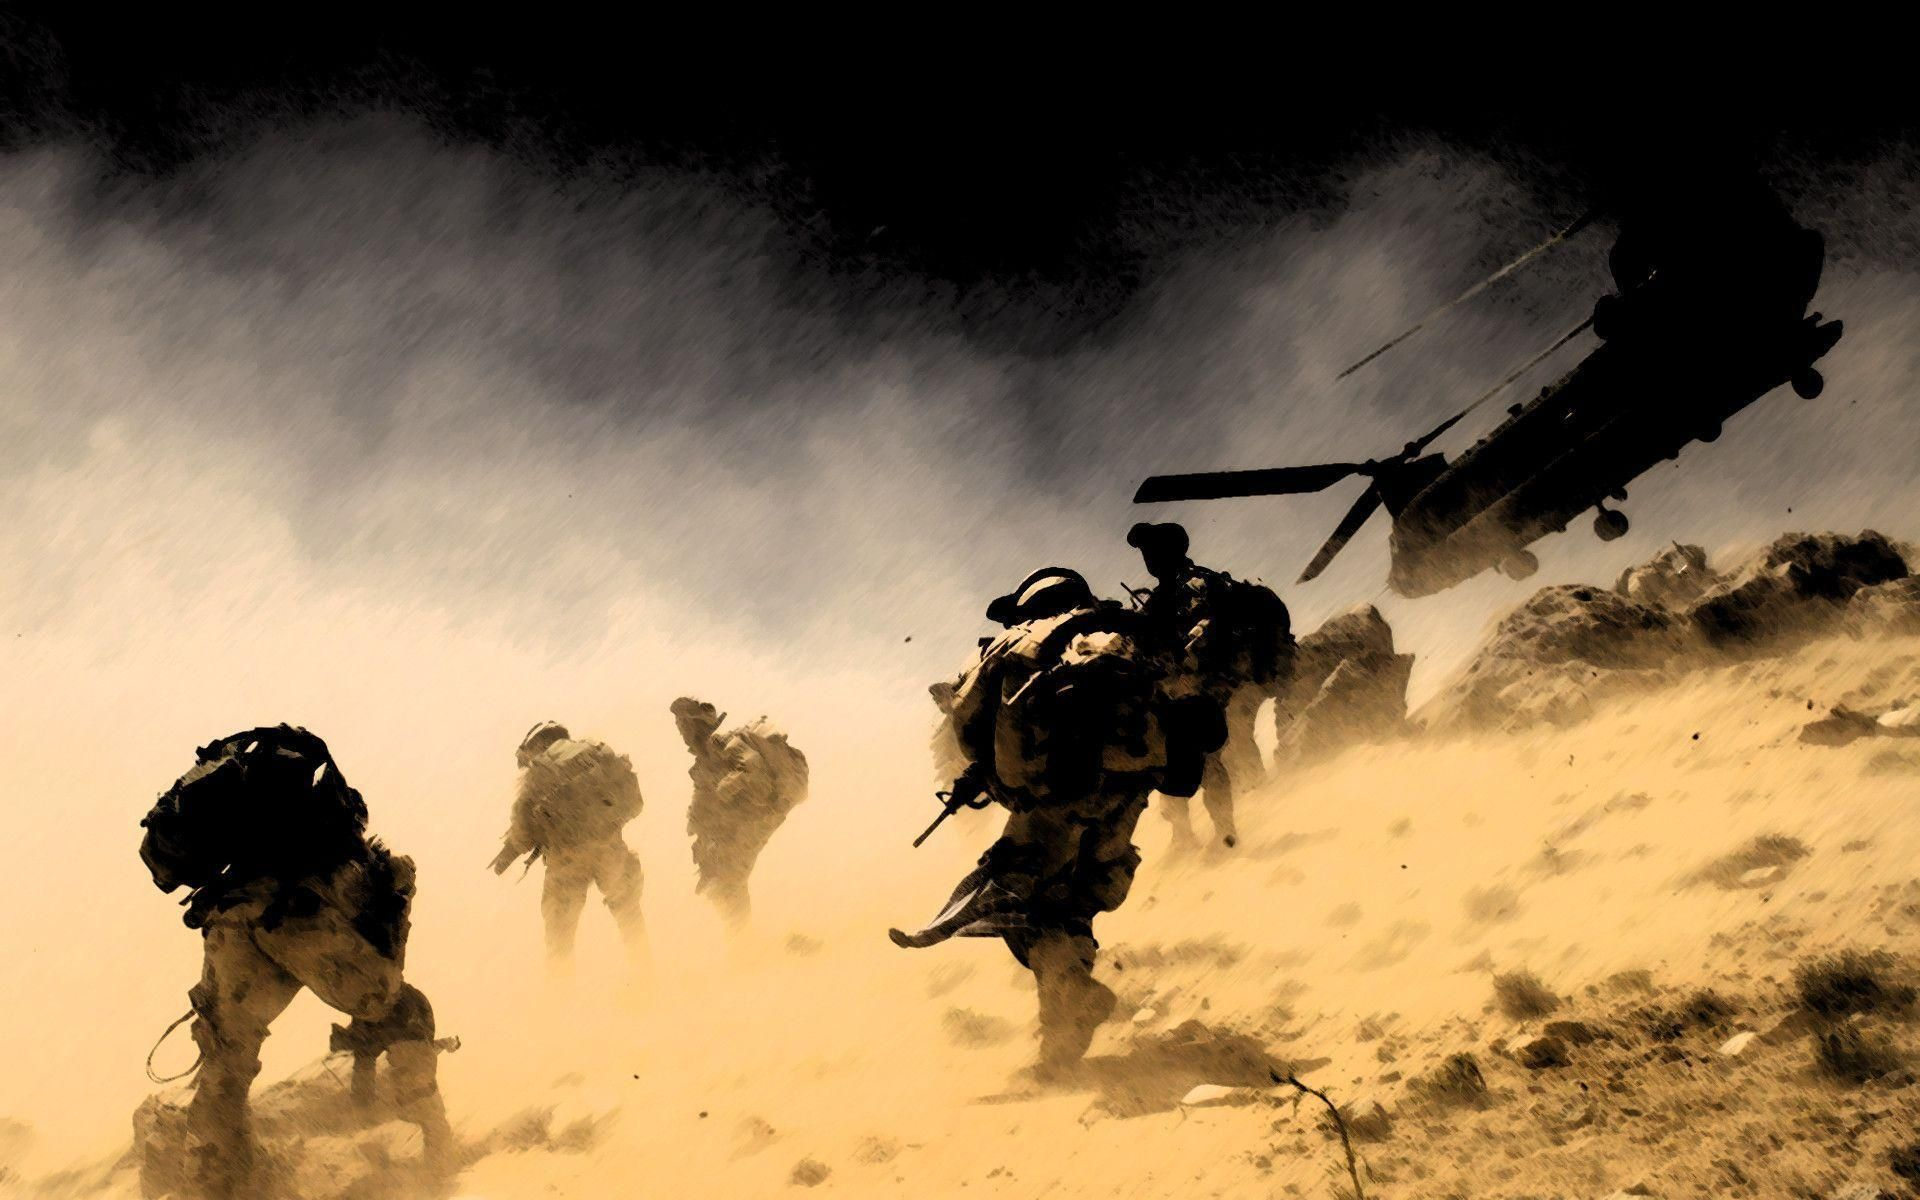 Hd Military Wallpapers Wallpaper Cave Military Wallpaper Army Wallpaper Military Soldiers